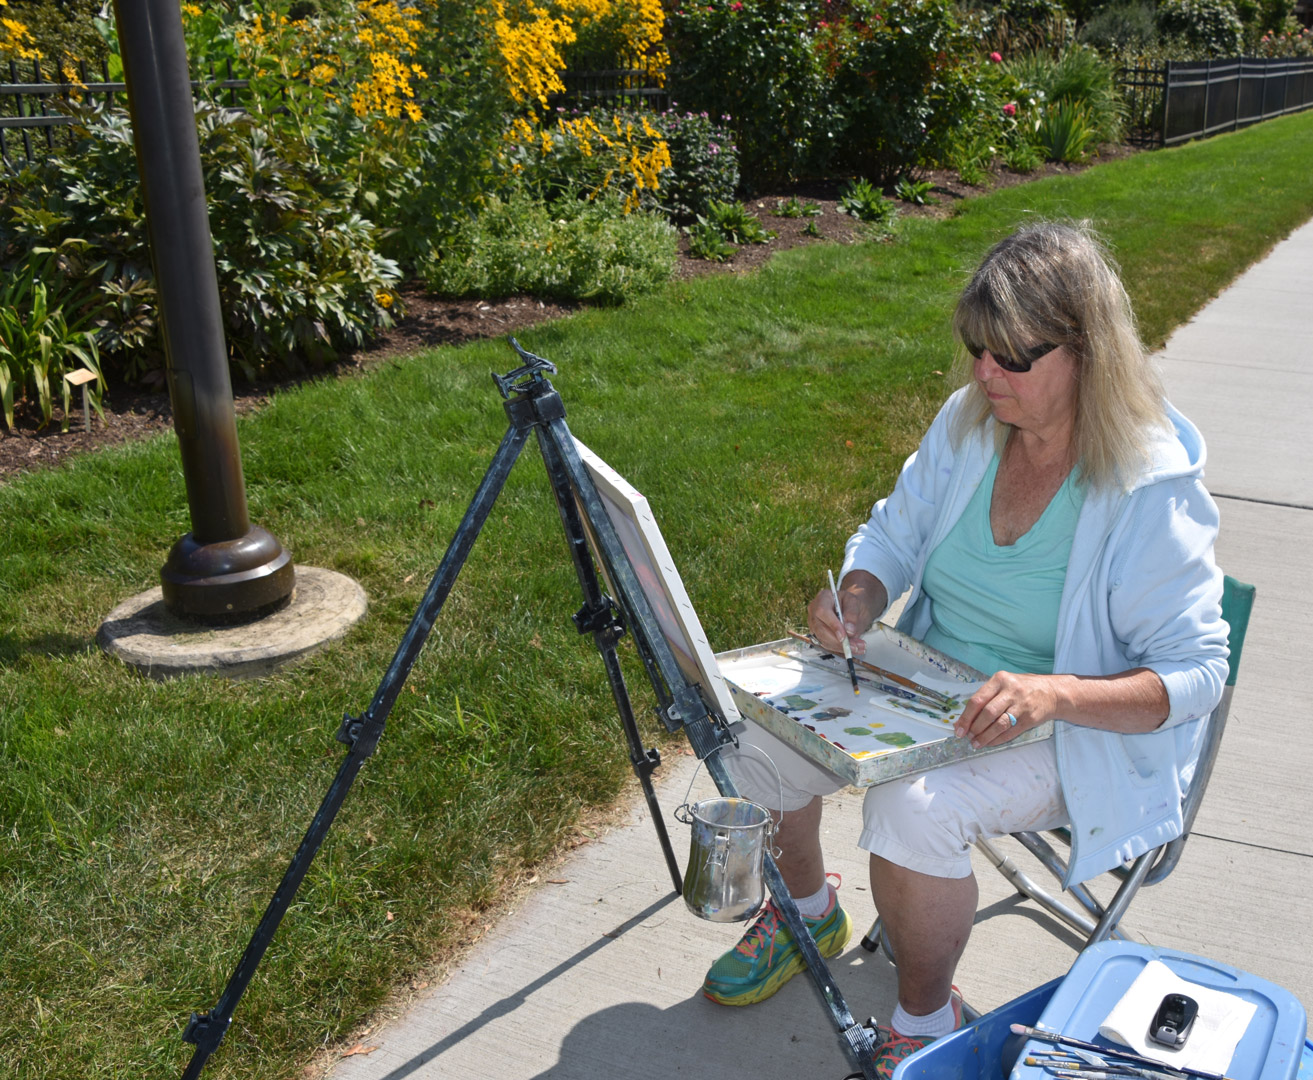 Roses In Garden: Plein Air Art Society Enjoys A Paint Out At Inniswood